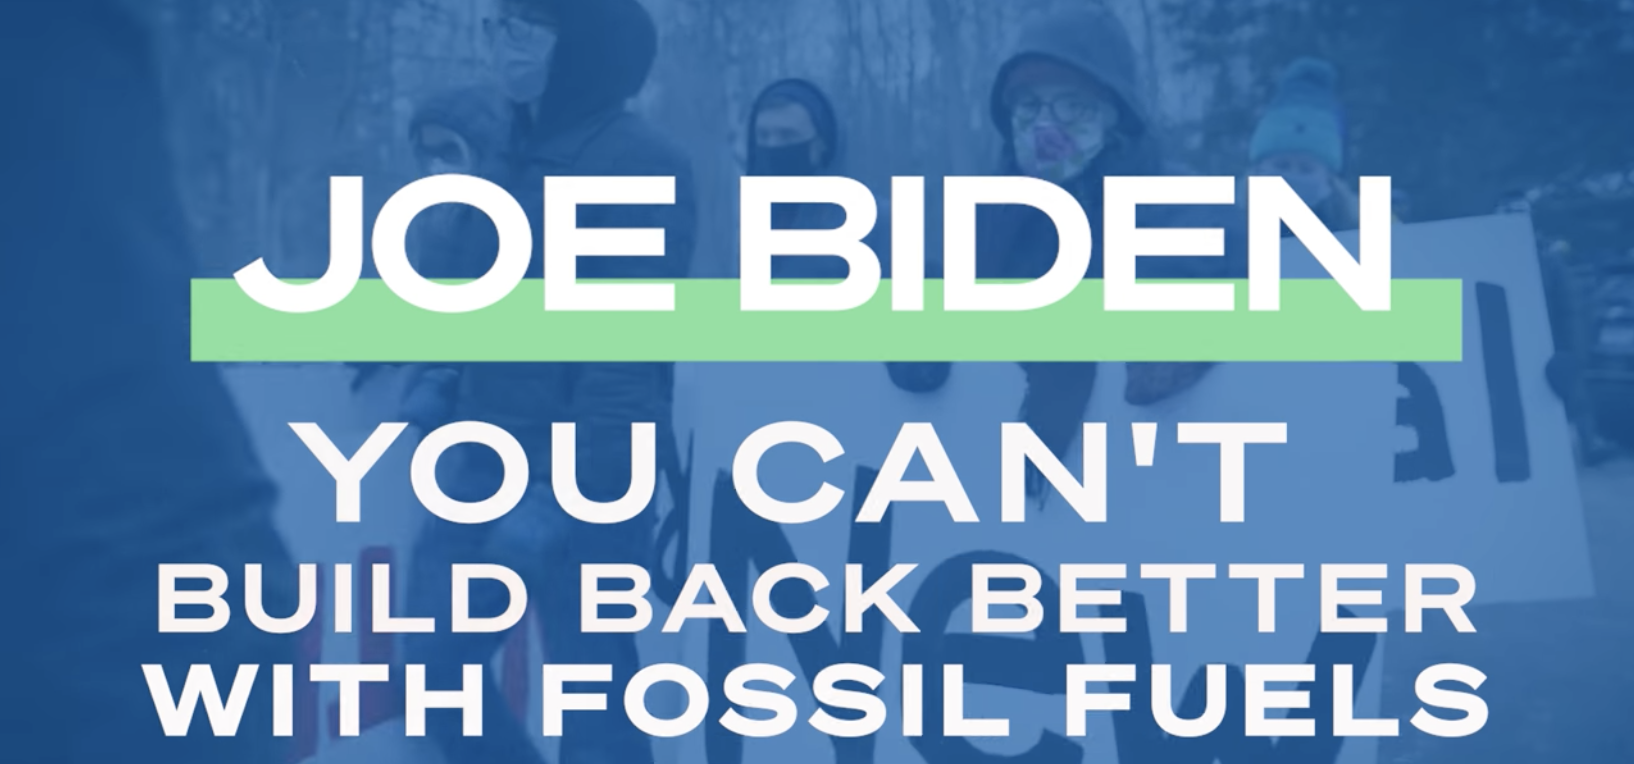 Joe Biden Build Back Fossil Free